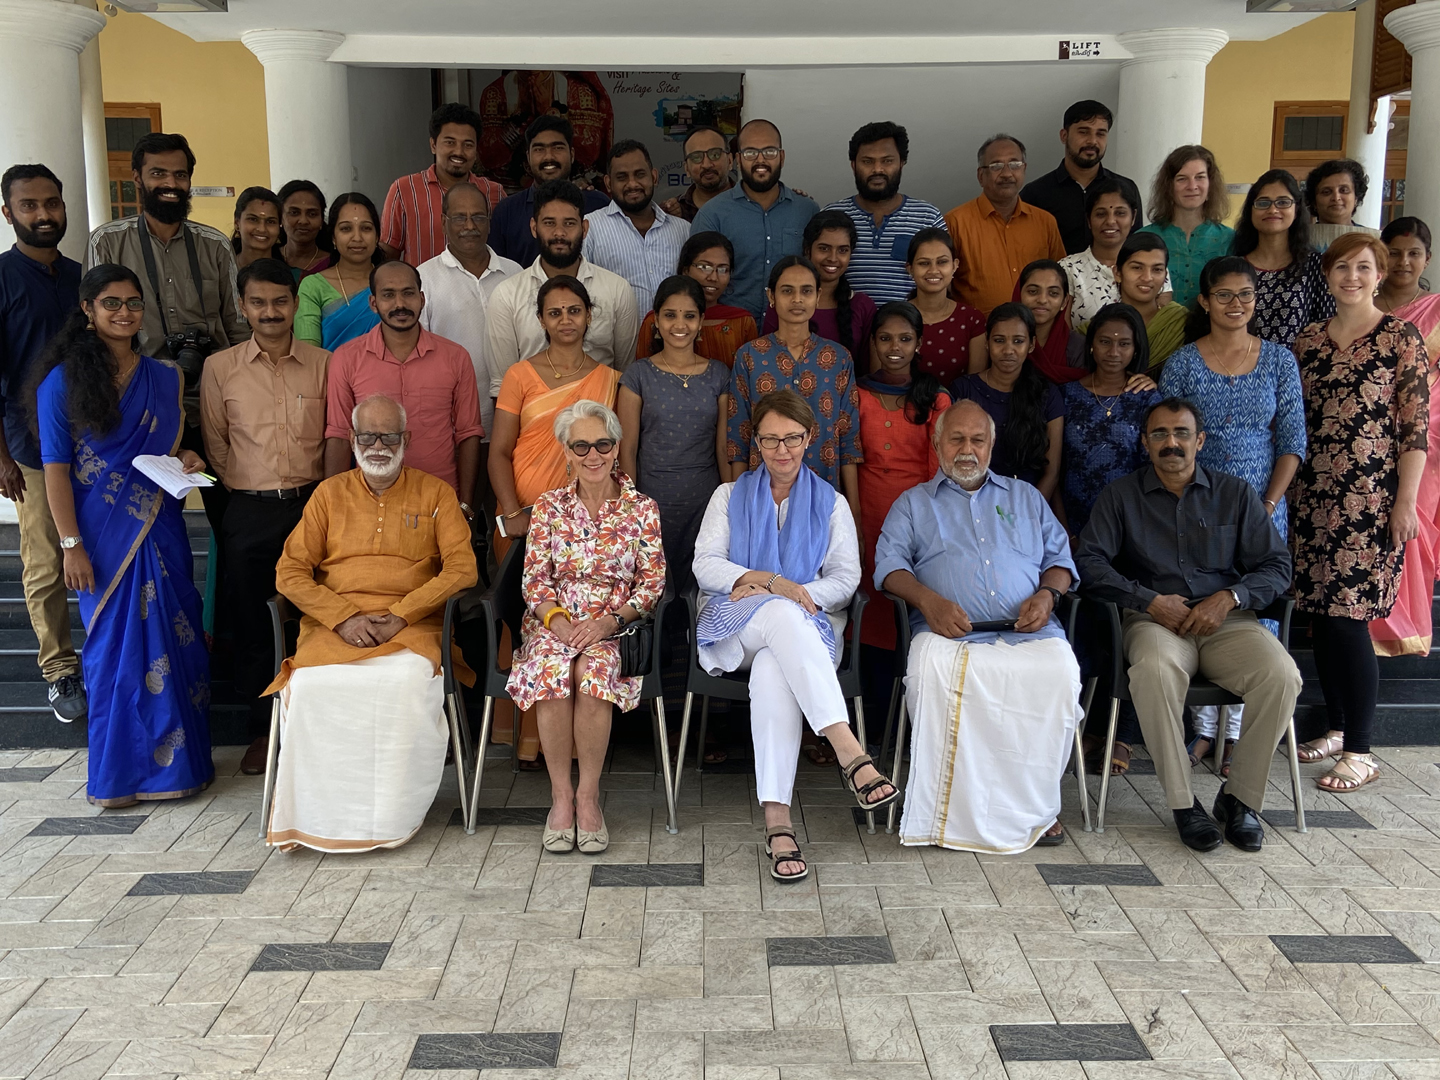 Group photo of the workshop organisers and participants. © Muziris Projects Limited, photo by Sarath Jayan.